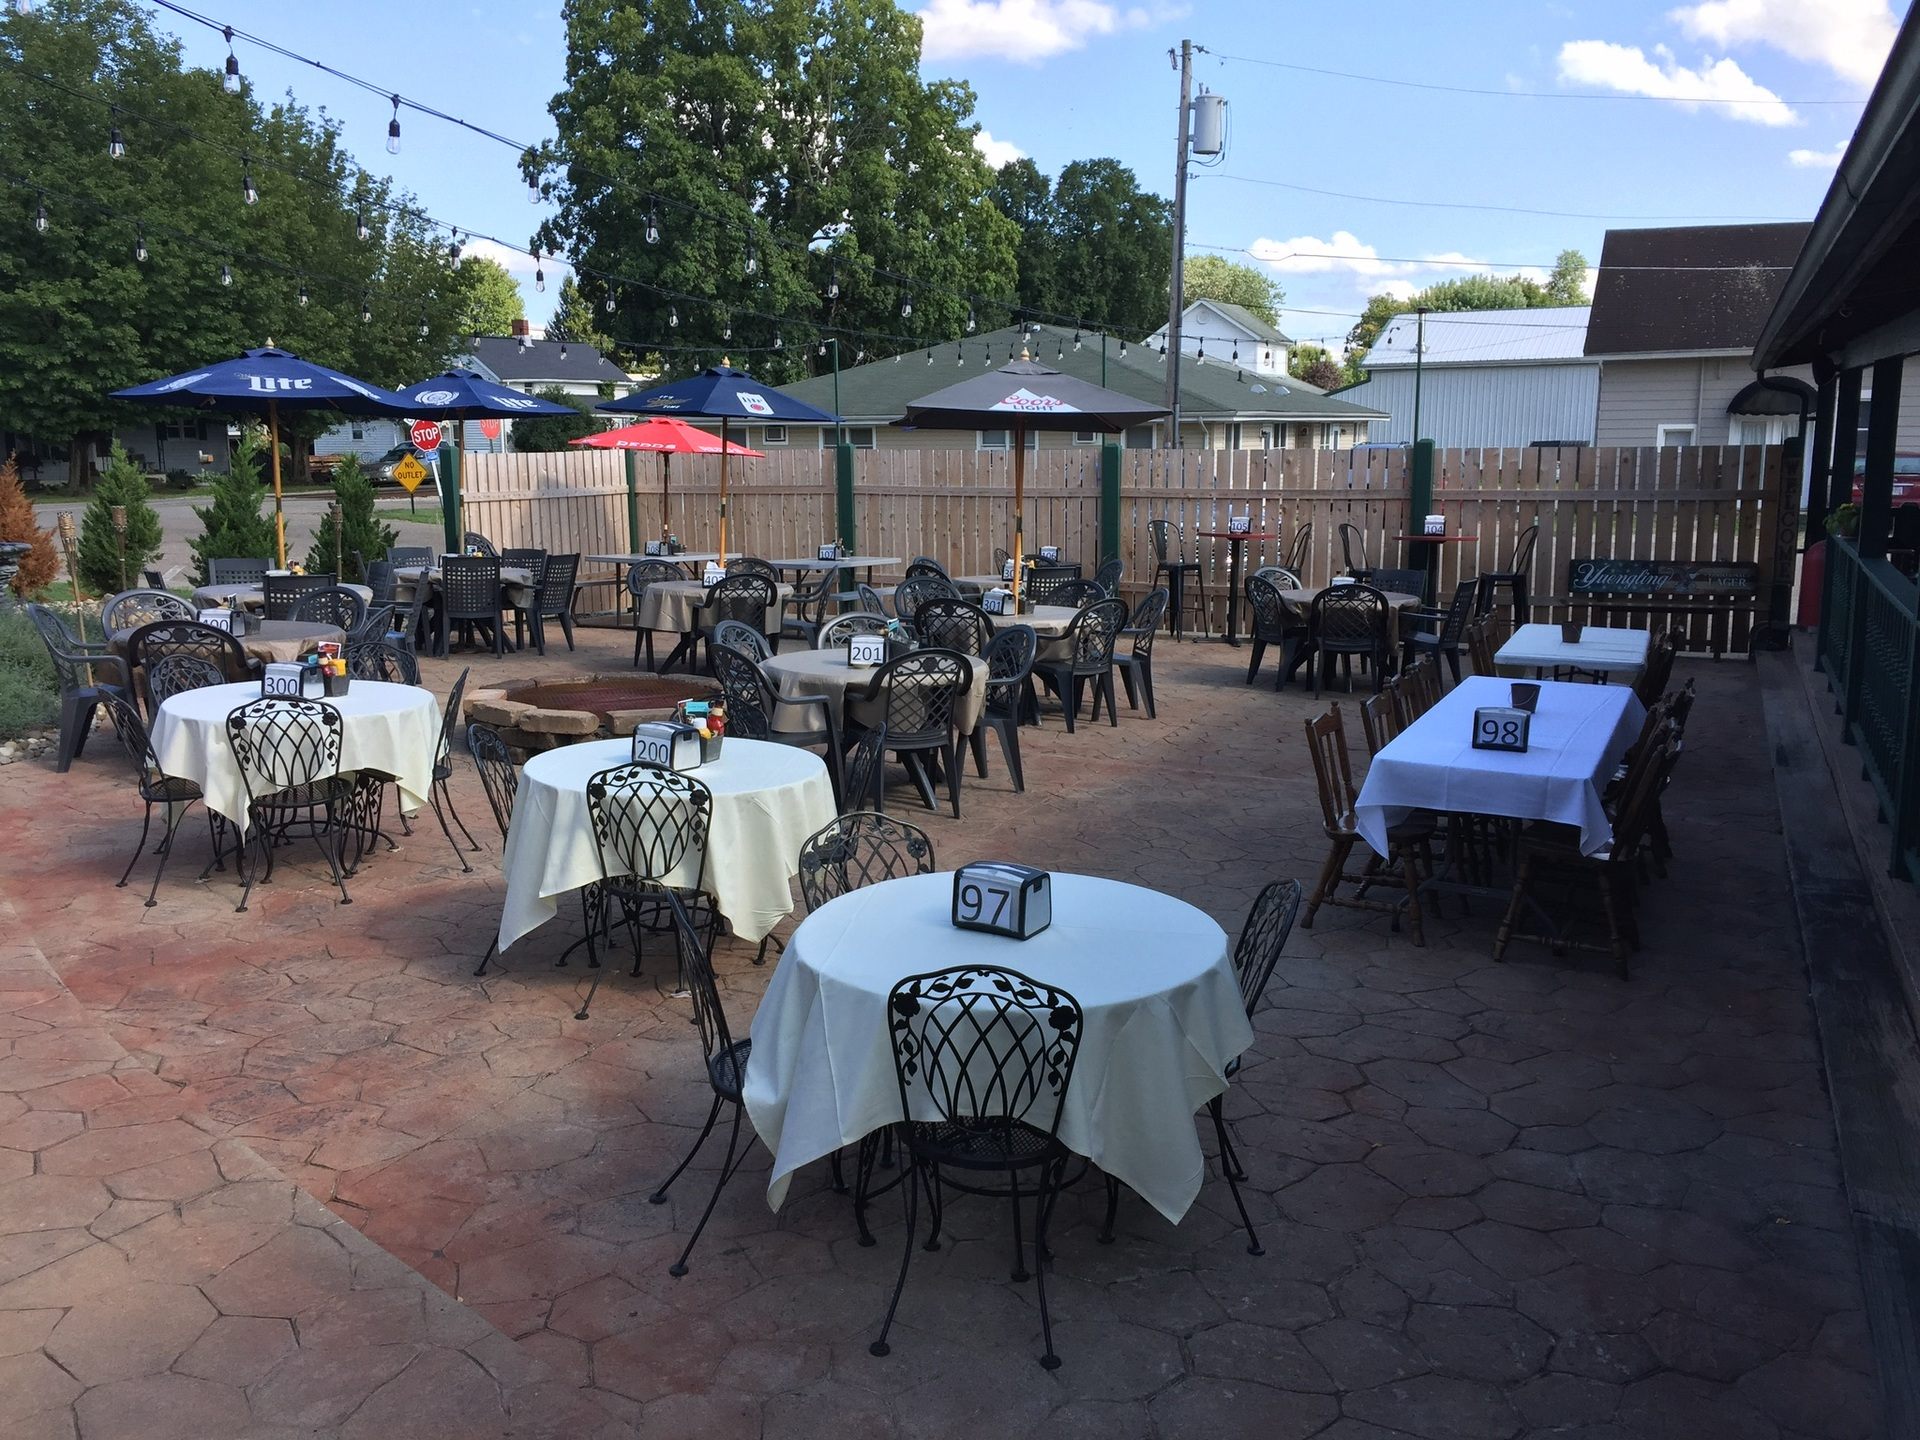 Enjoy Food and Drinks on our beautifully lit patio dining area.